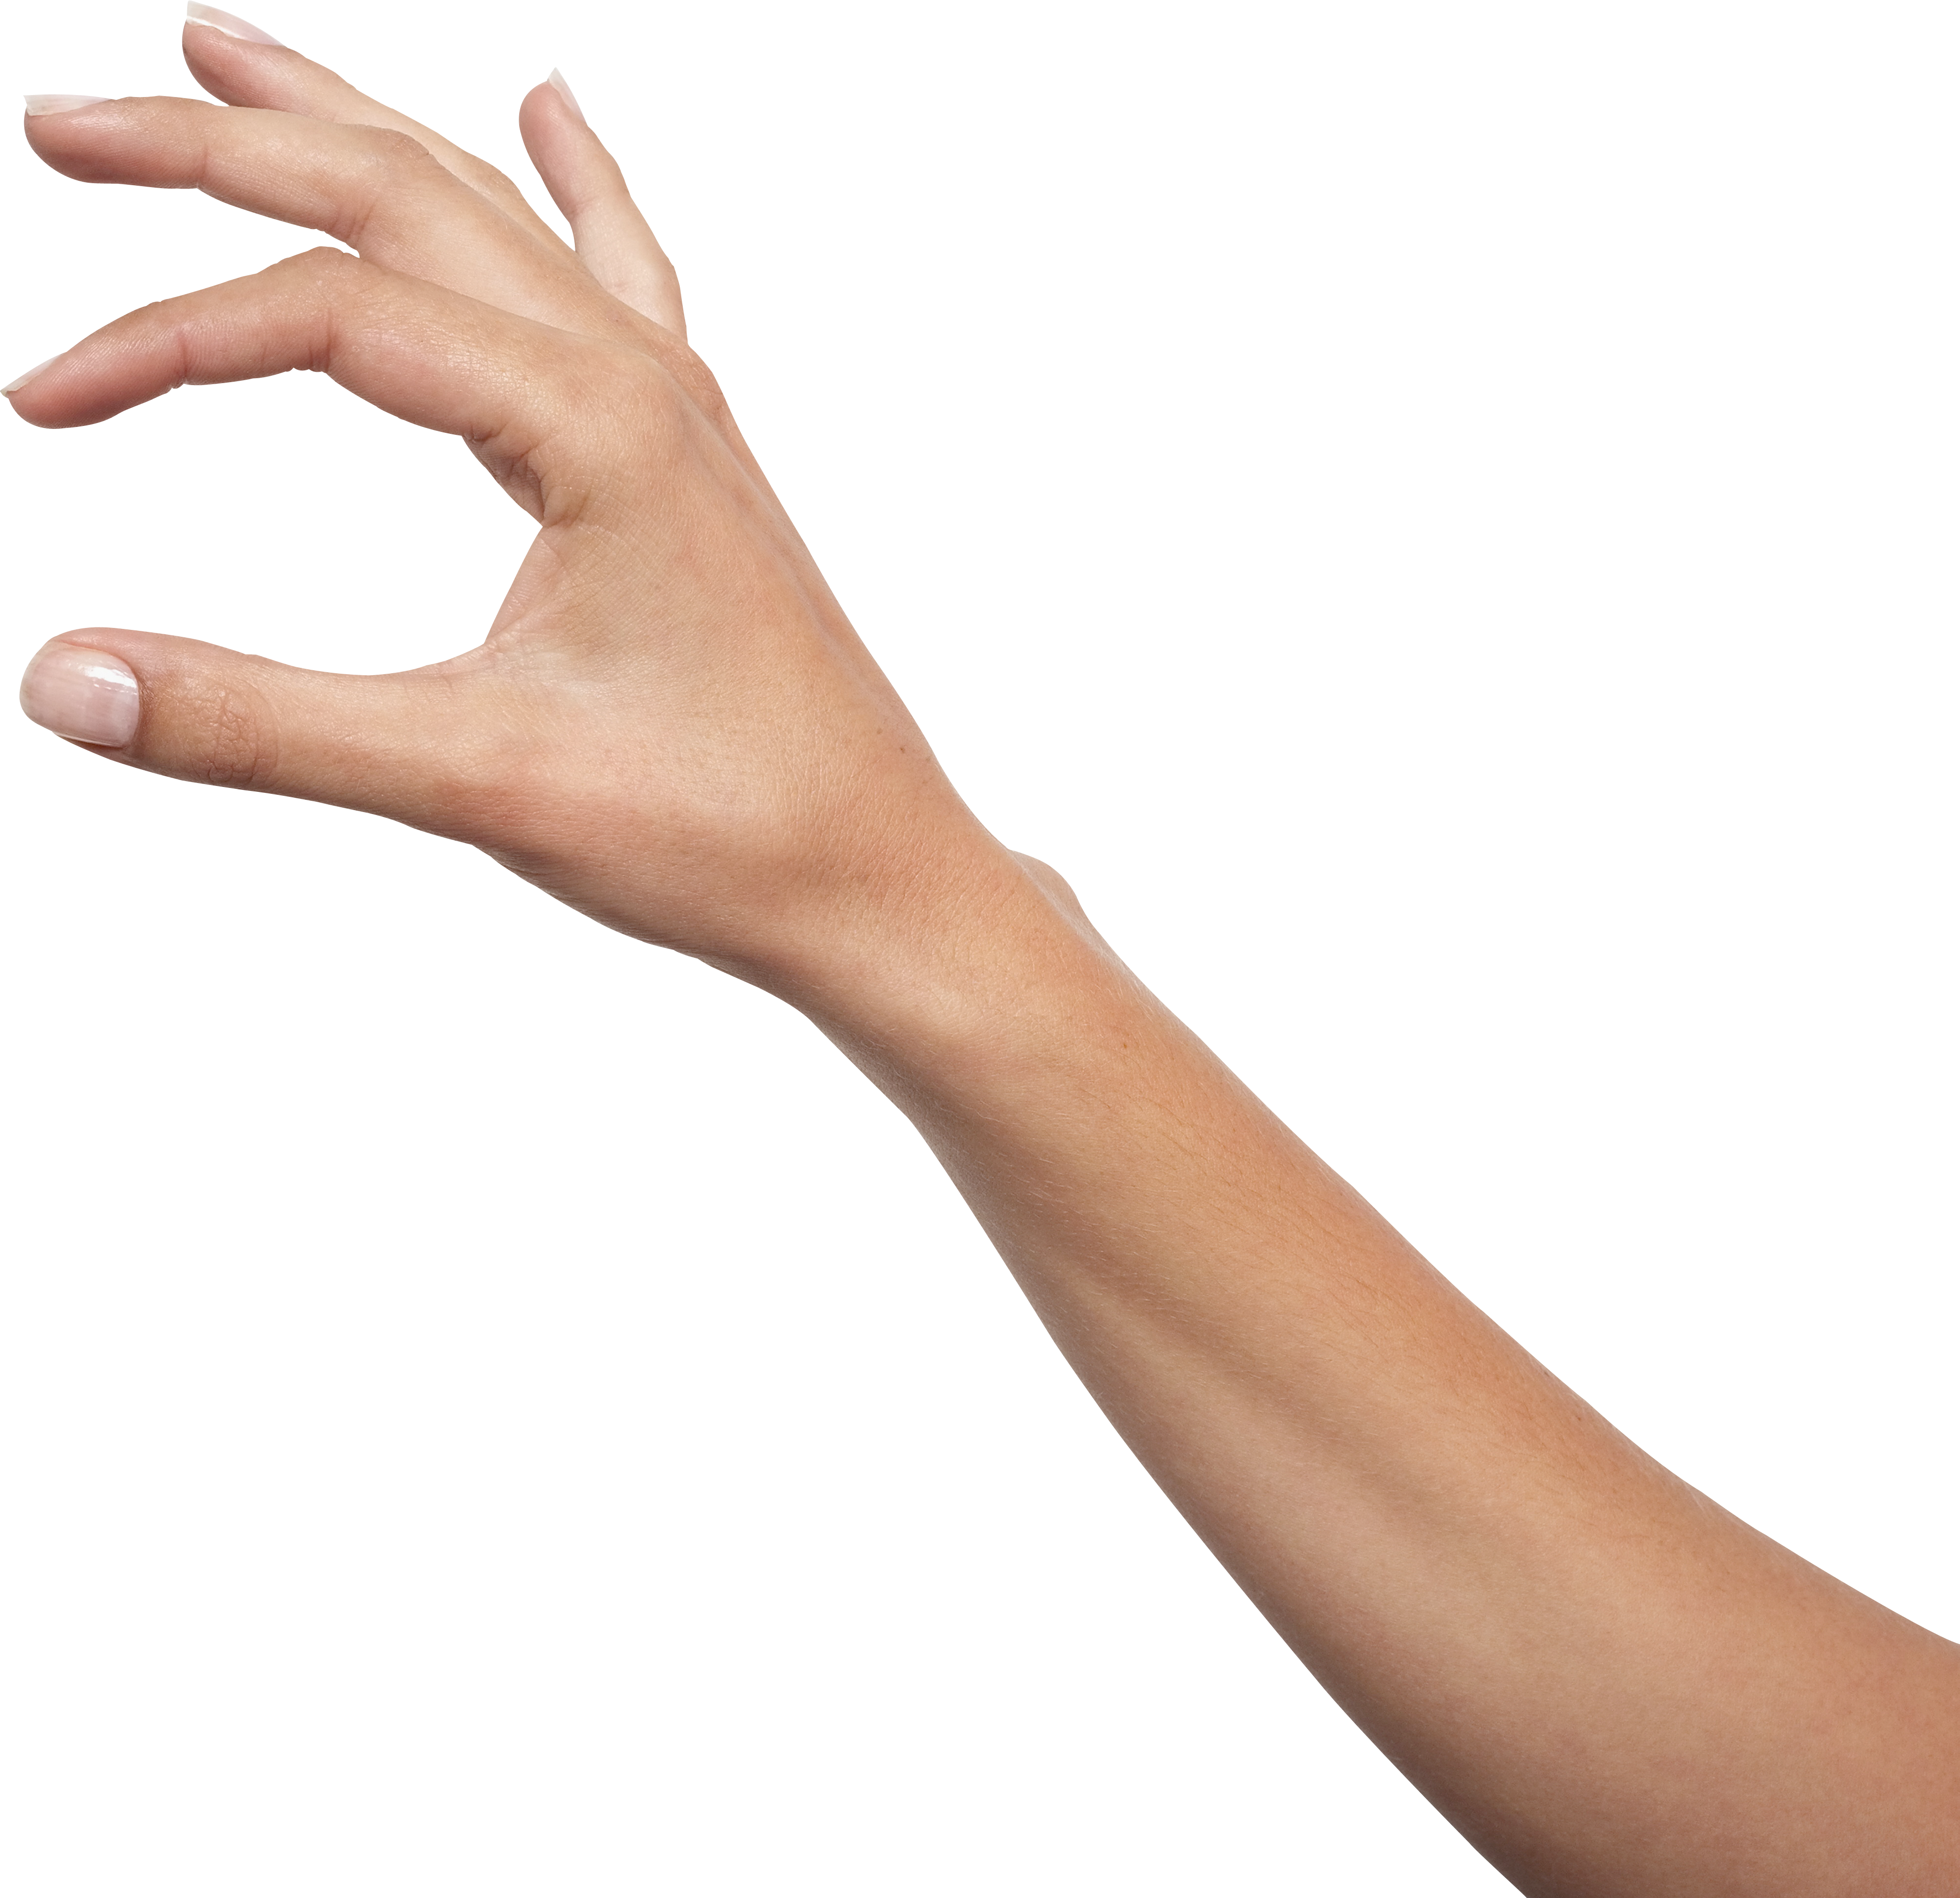 Hands Png Image Hand Images Png Images For Editing Hand Photo